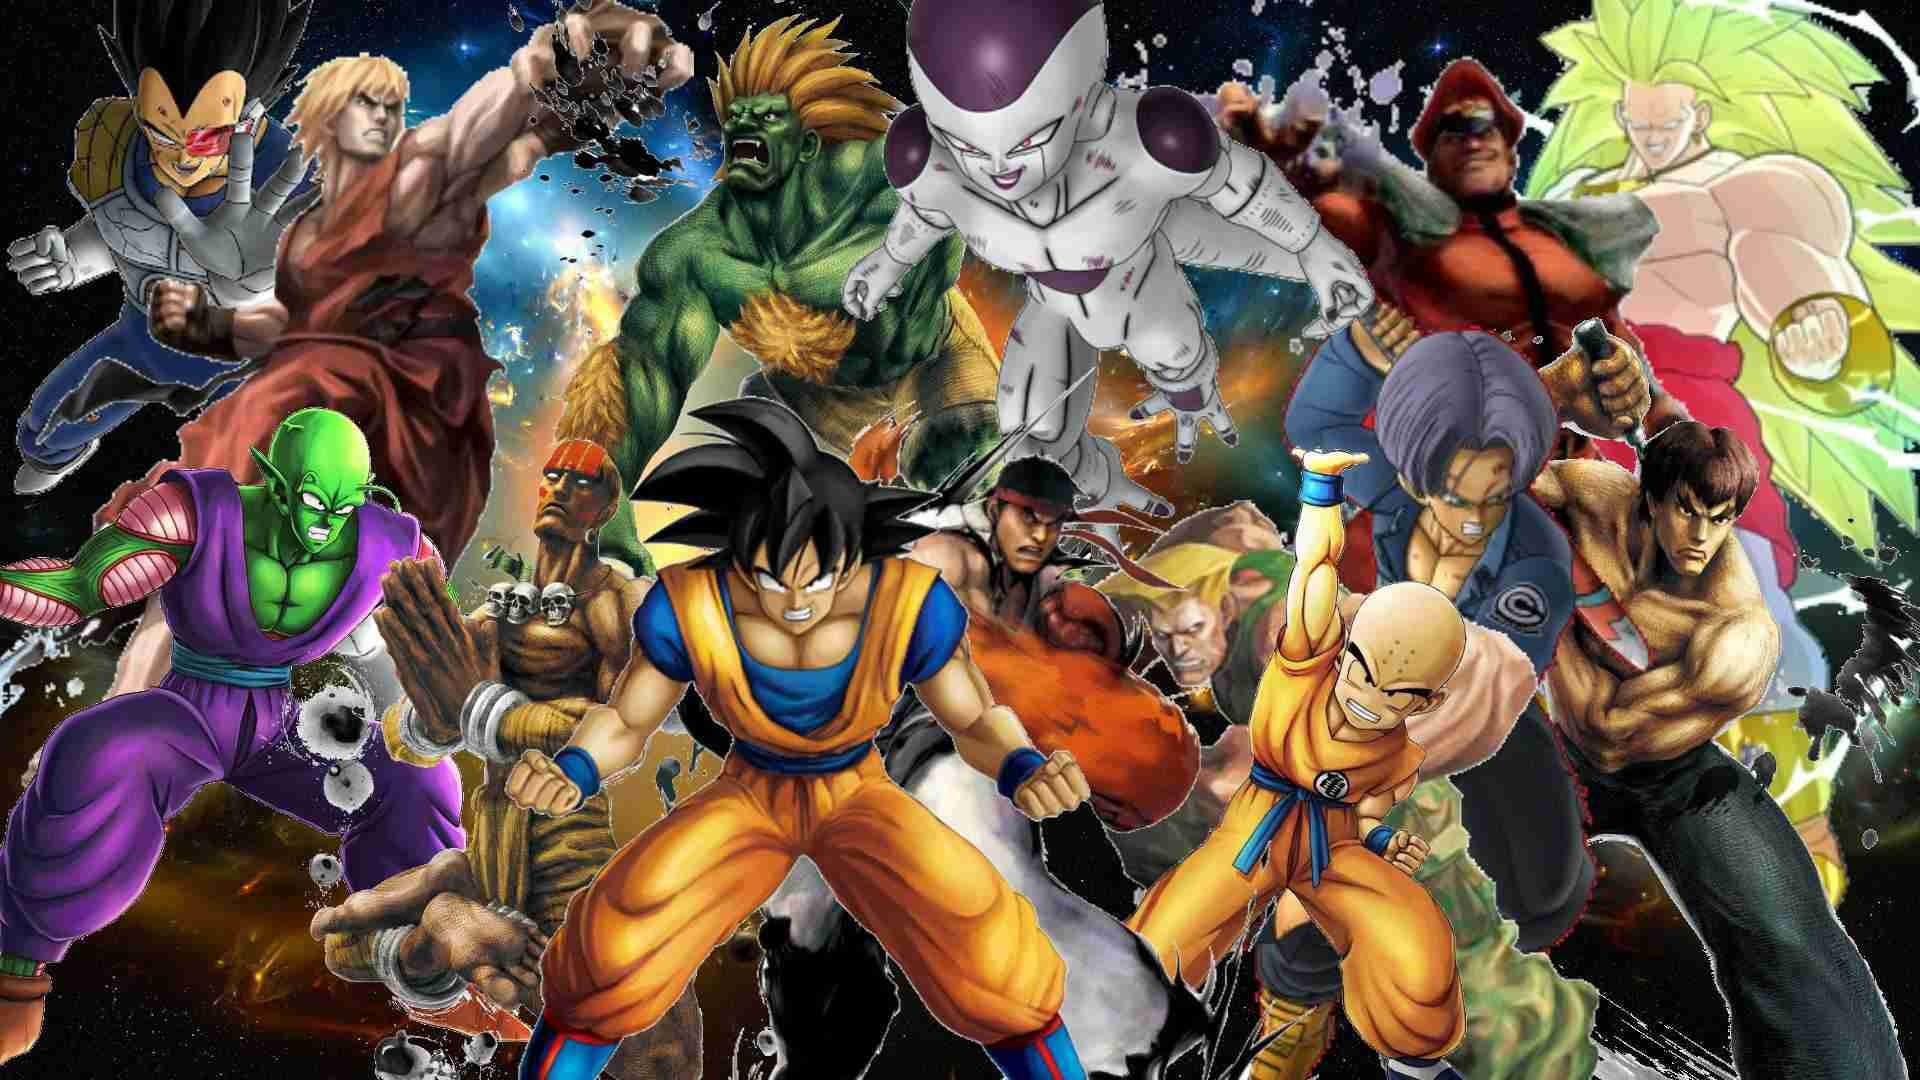 Dragon ball z hd wallpapers 69 images - Images dragon ball z ...